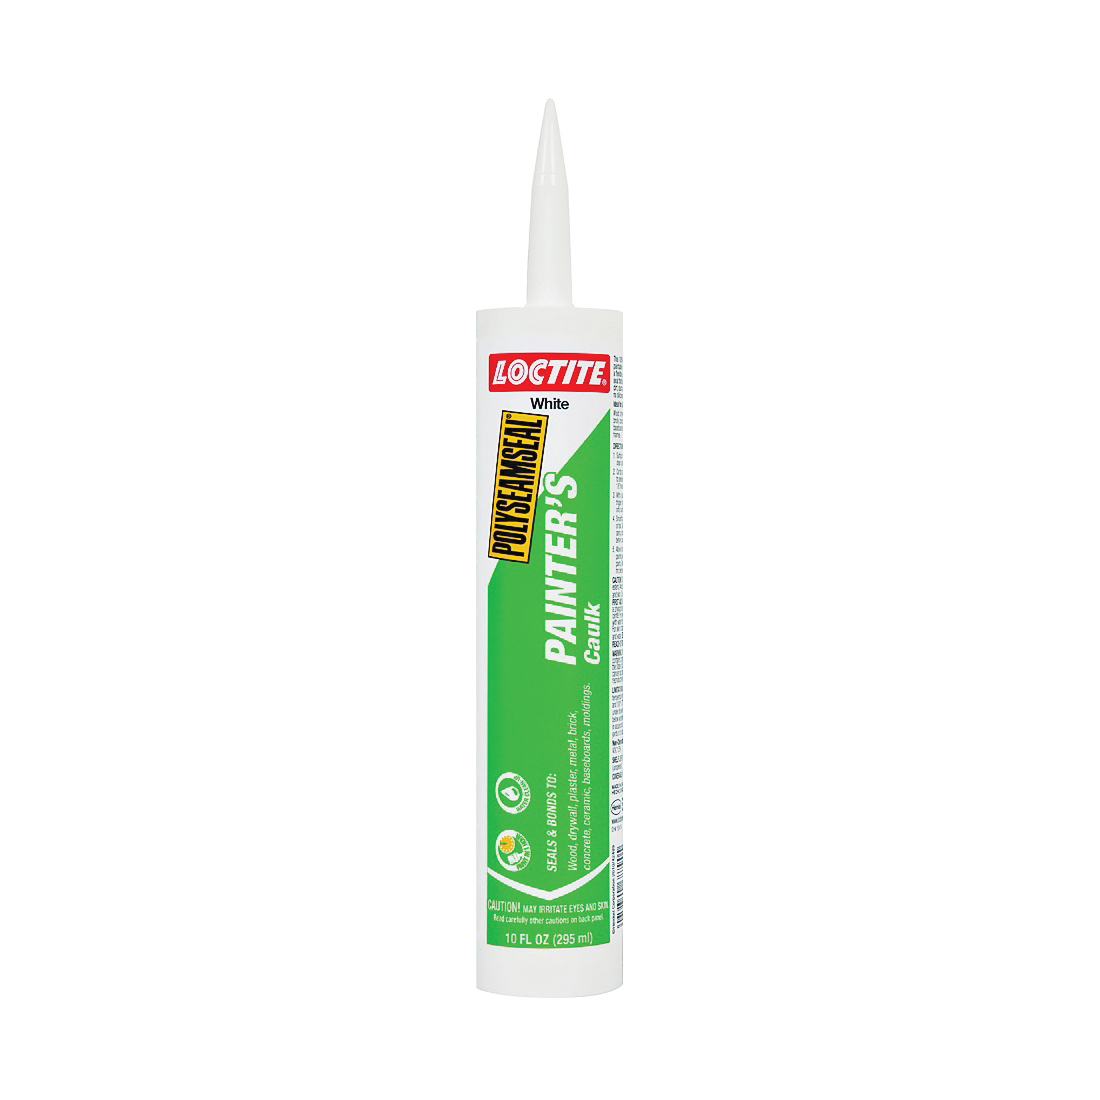 Picture of Loctite POLYSEAMSEAL 1511100 Painter's Caulk, White, 40 to 100 deg F, 10 fl-oz Package, Cartridge